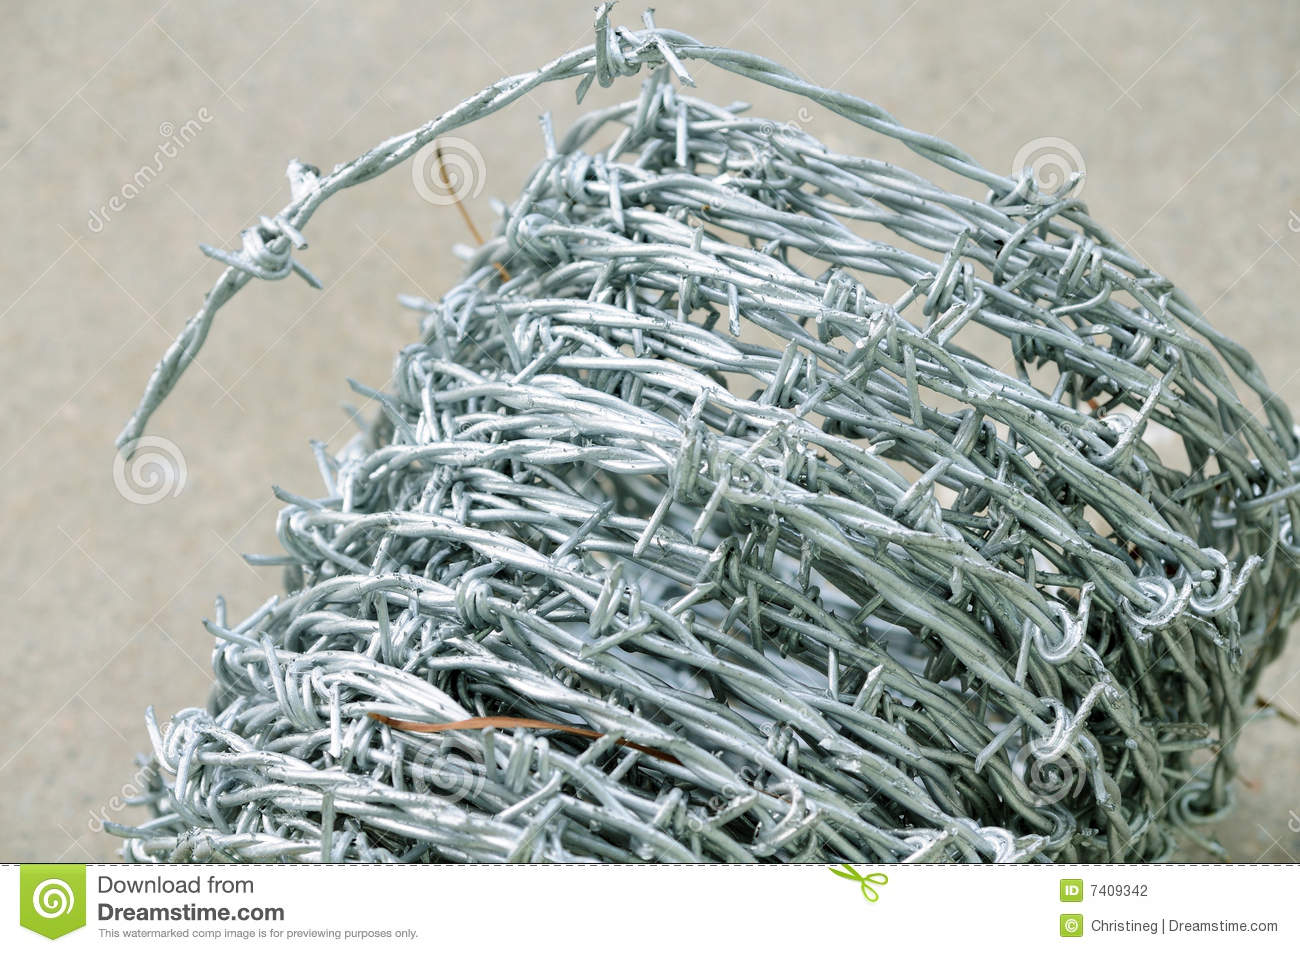 Barbed wire detail stock photo. Image of dangerous, roll - 7409342